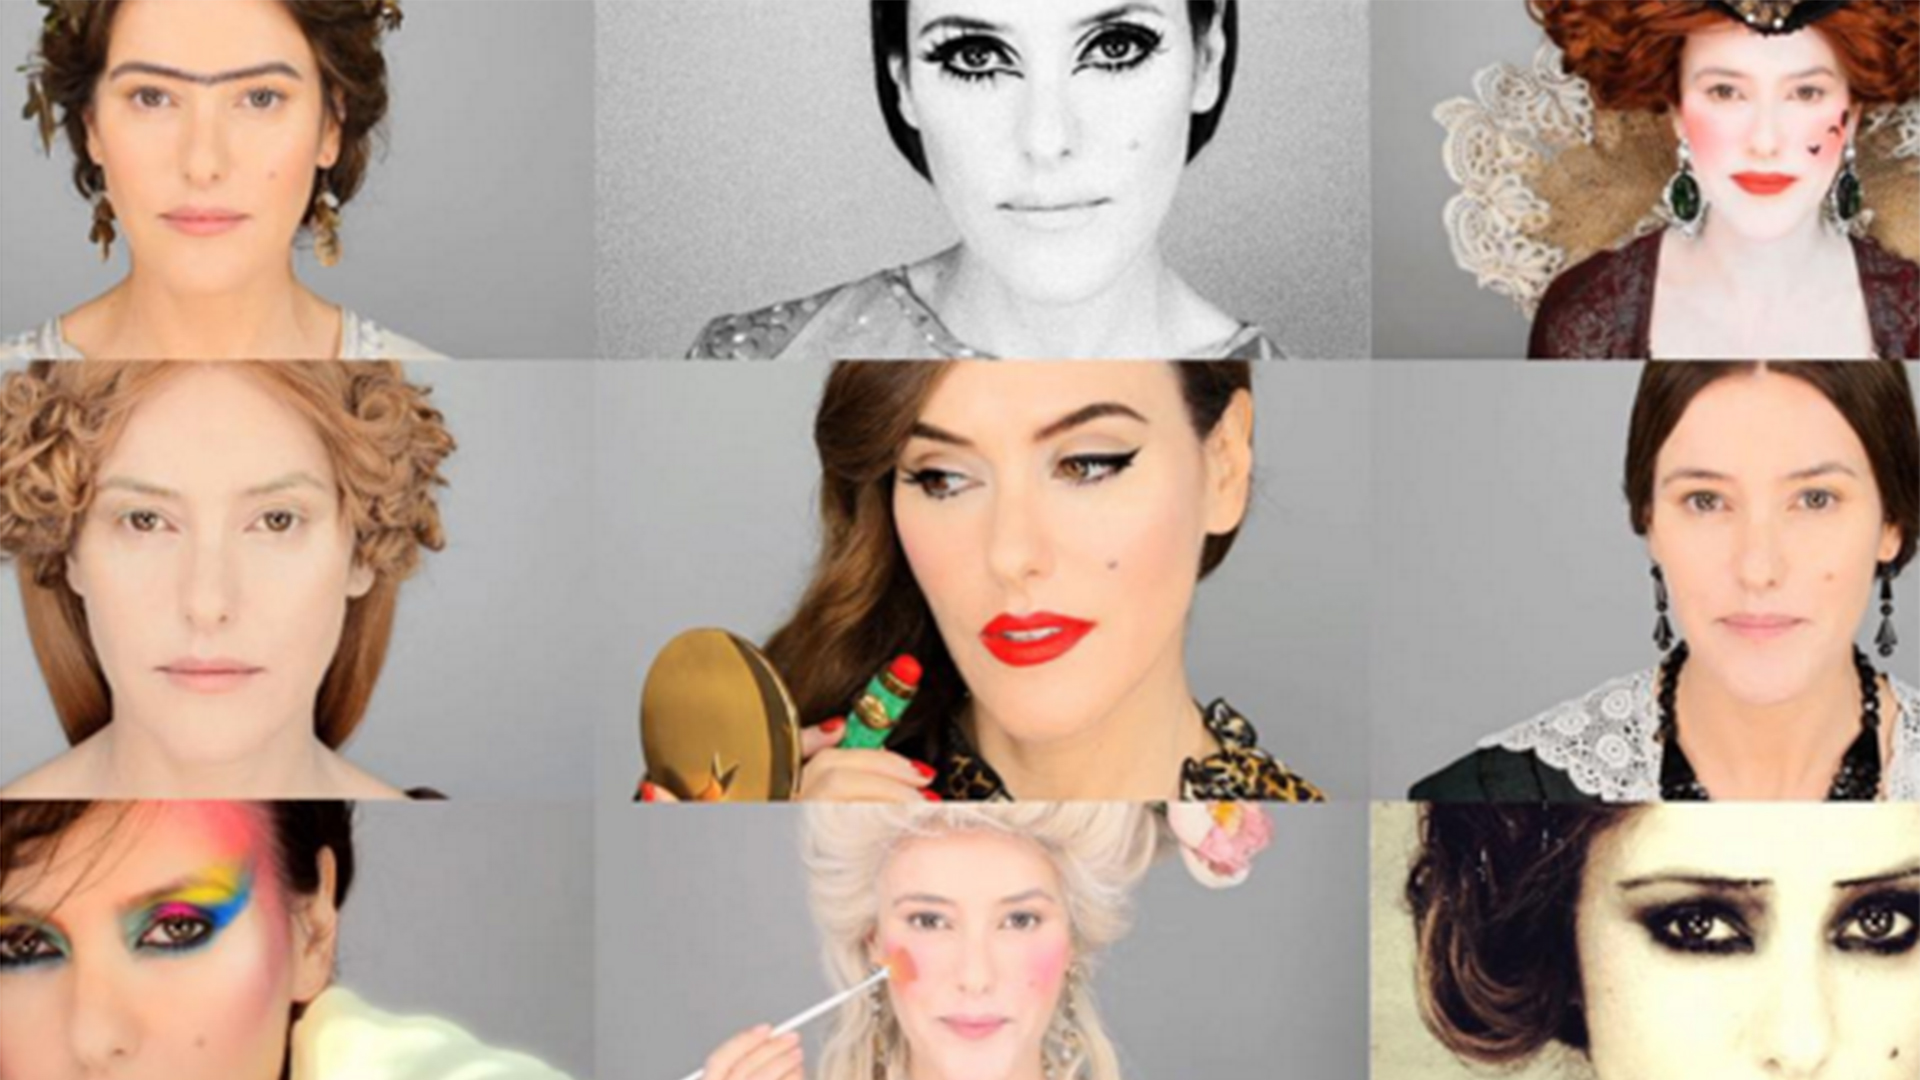 Makeup Artist Lisa Eldridge Re-Creates Every Historic Beauty Moment in Under 7Minutes